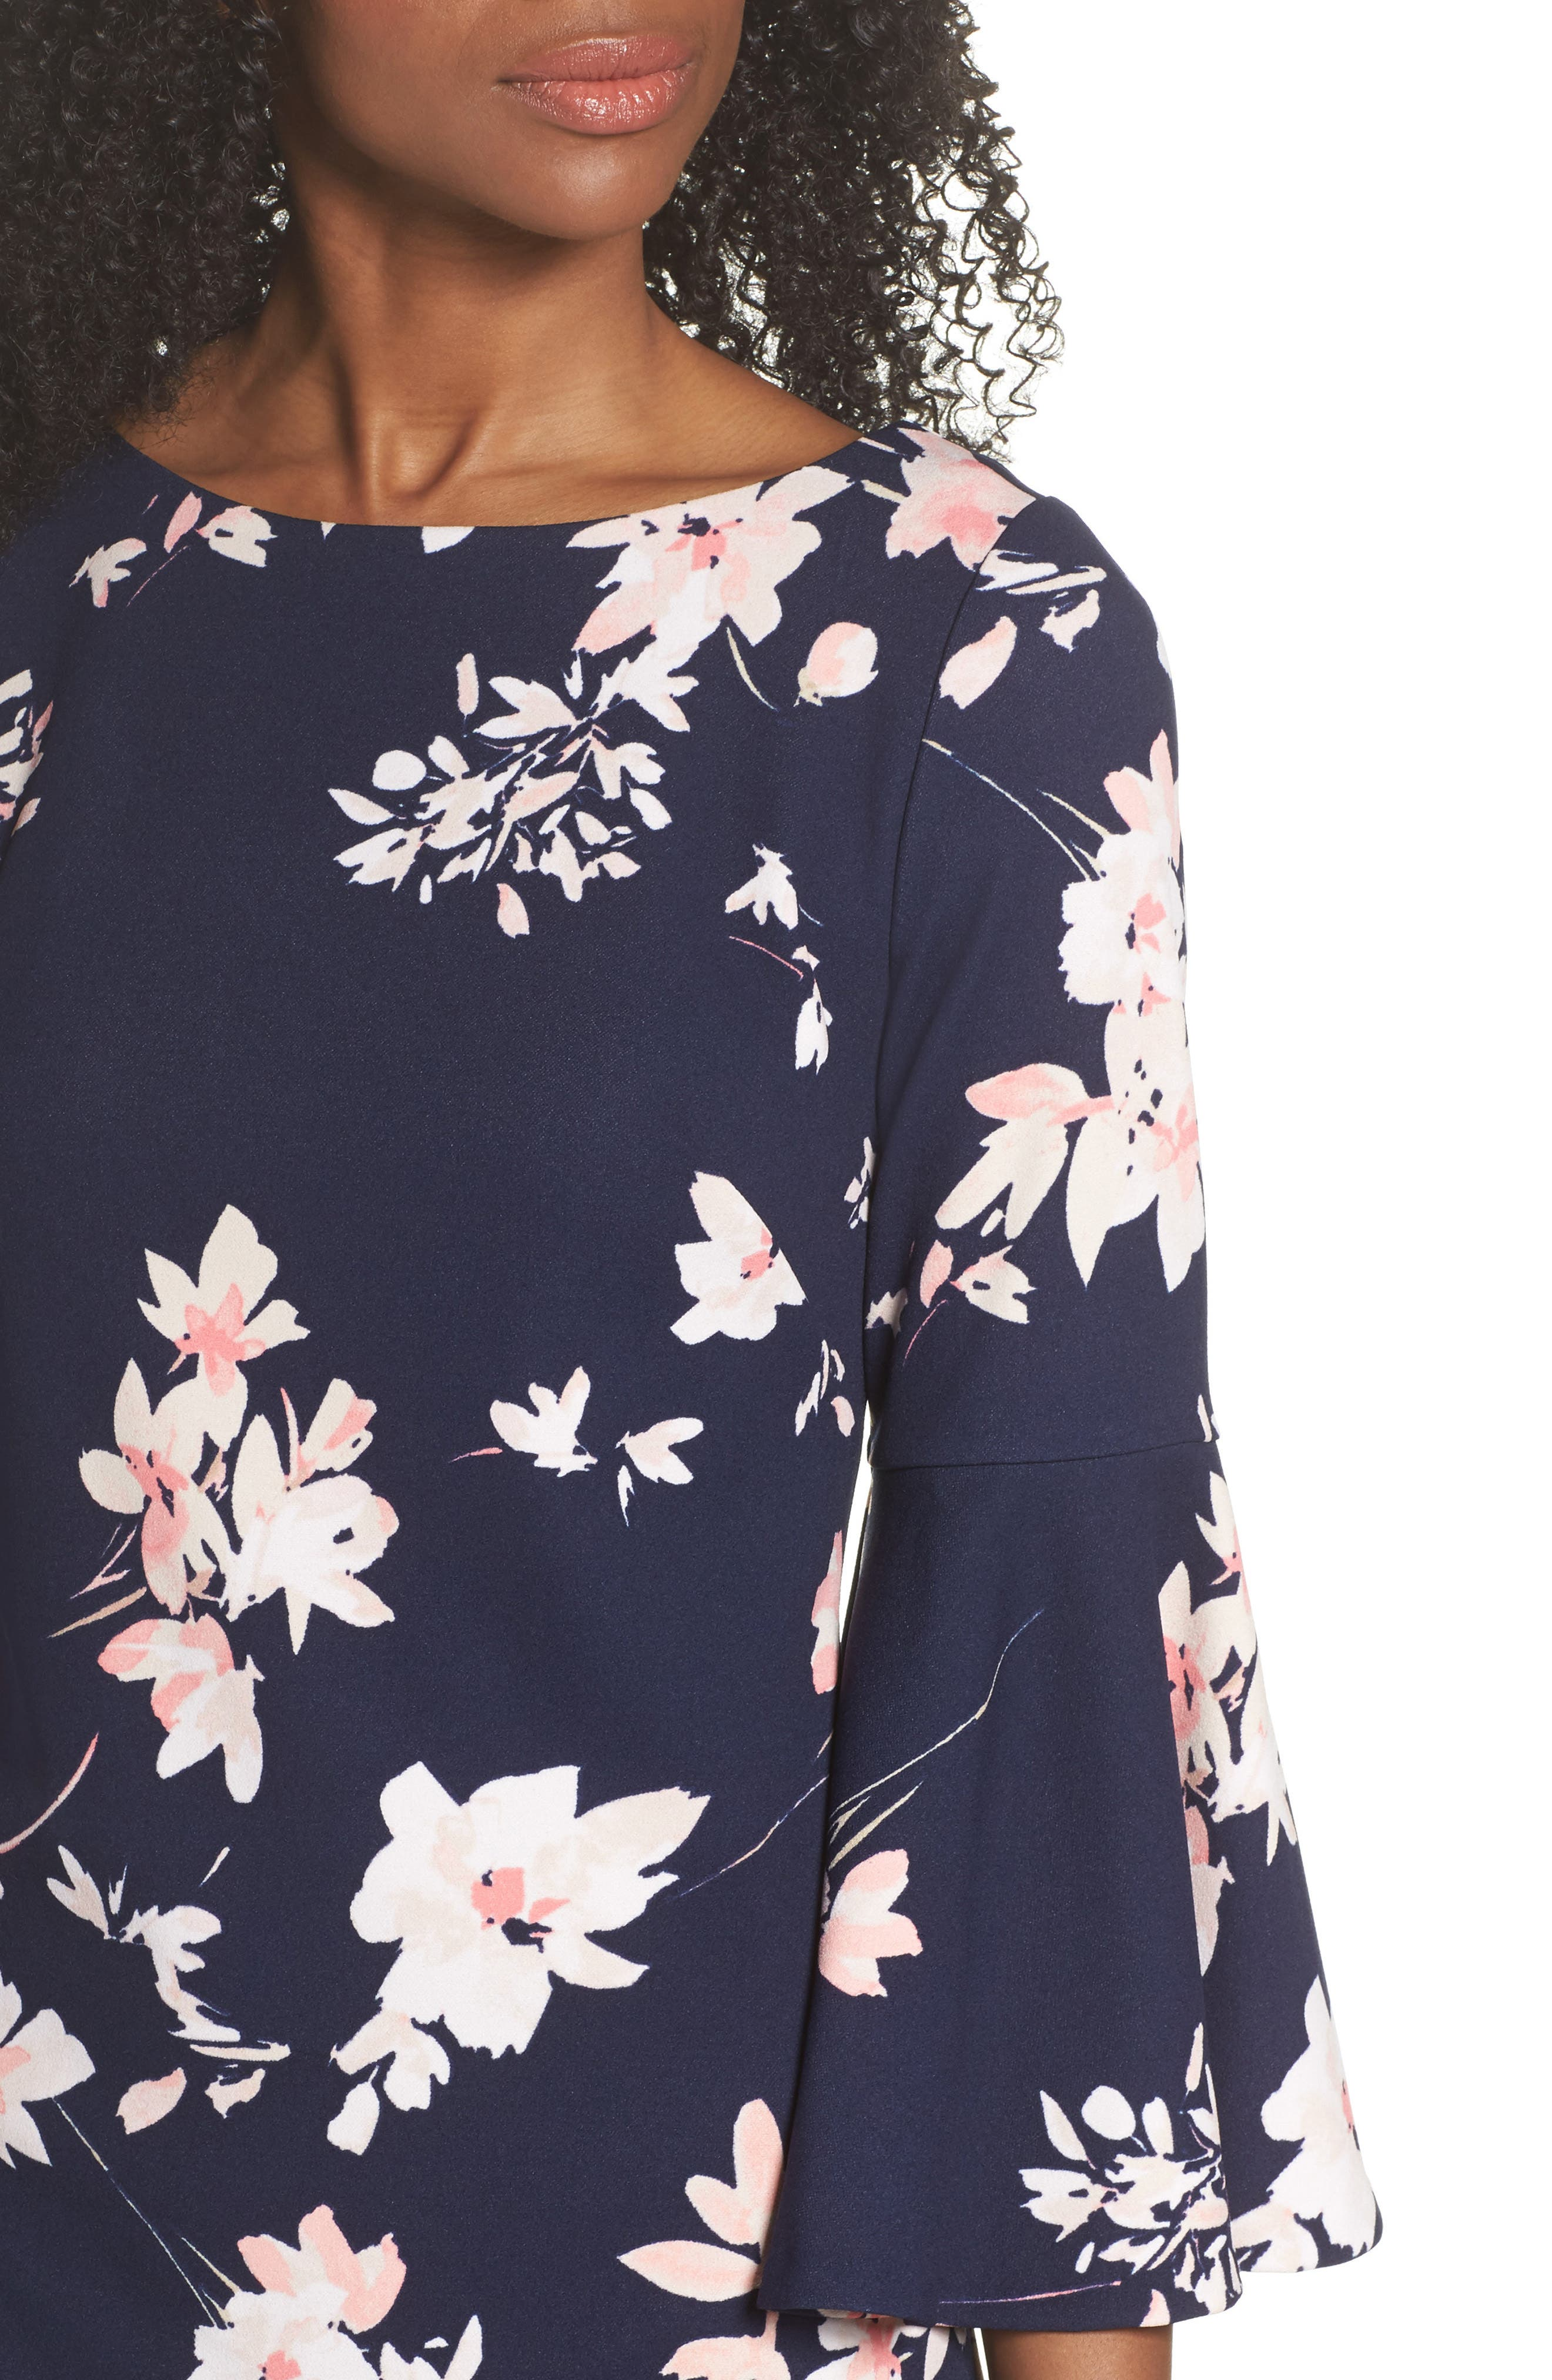 Floral Bell Sleeve Dress,                             Alternate thumbnail 4, color,                             Navy/ Pink